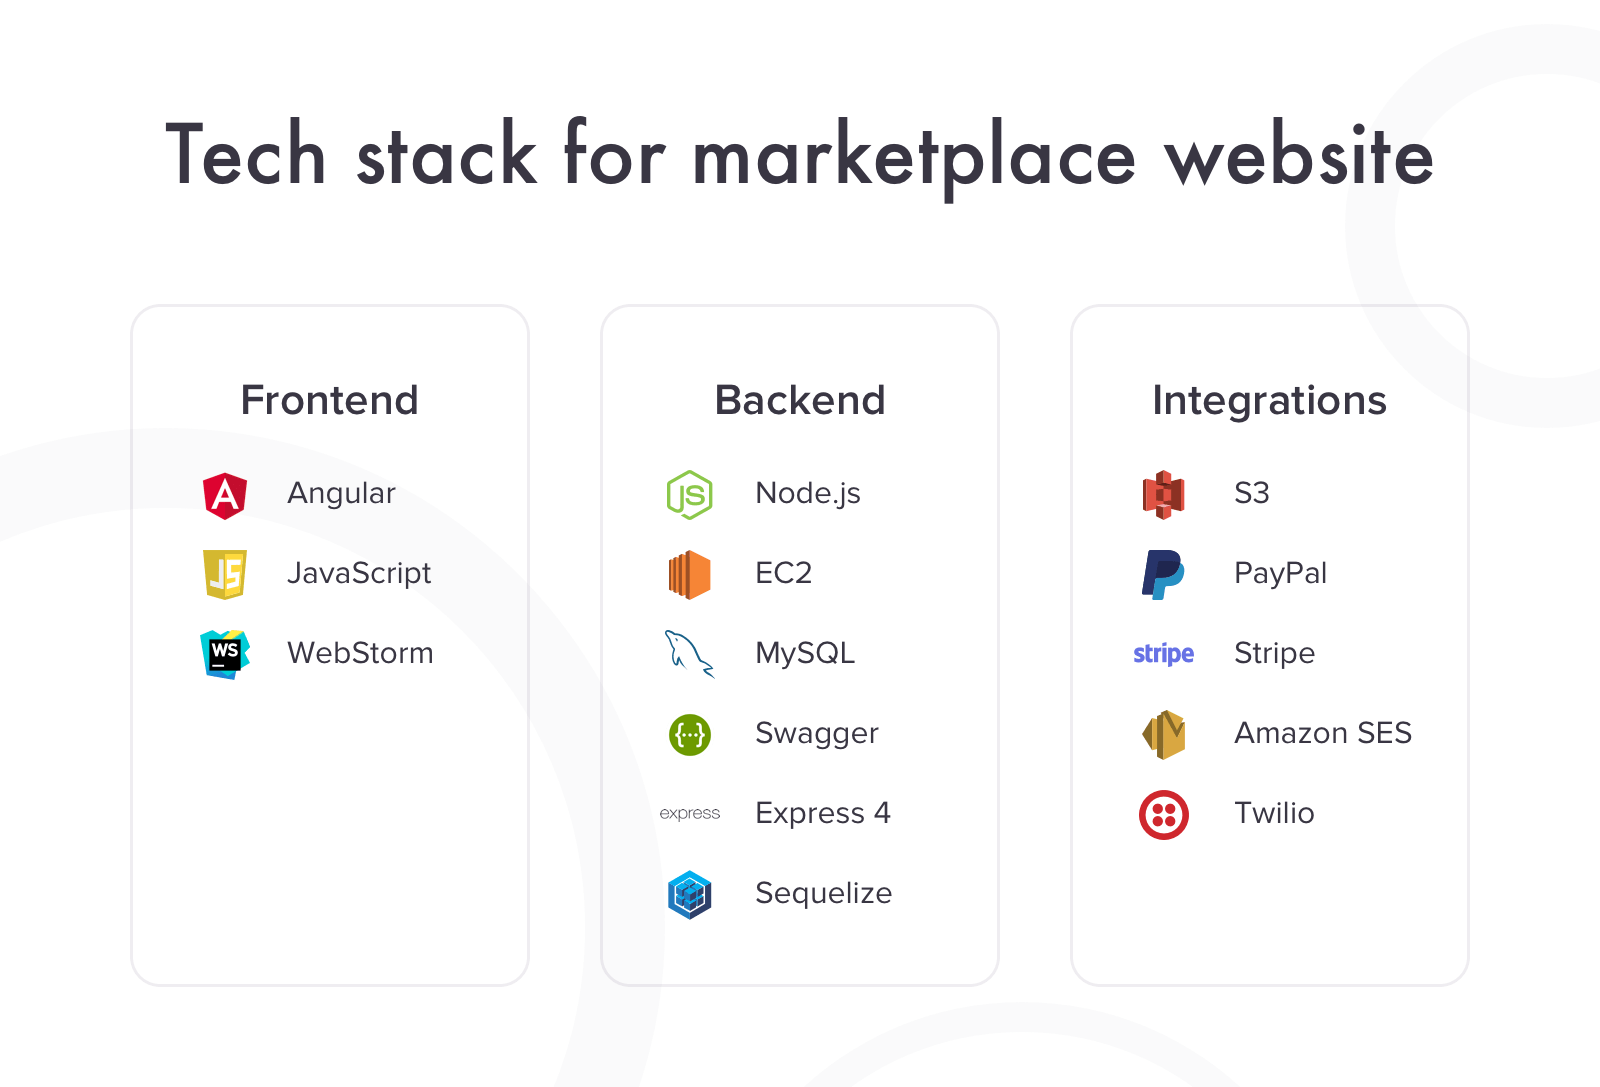 Tech stack for marketplace website